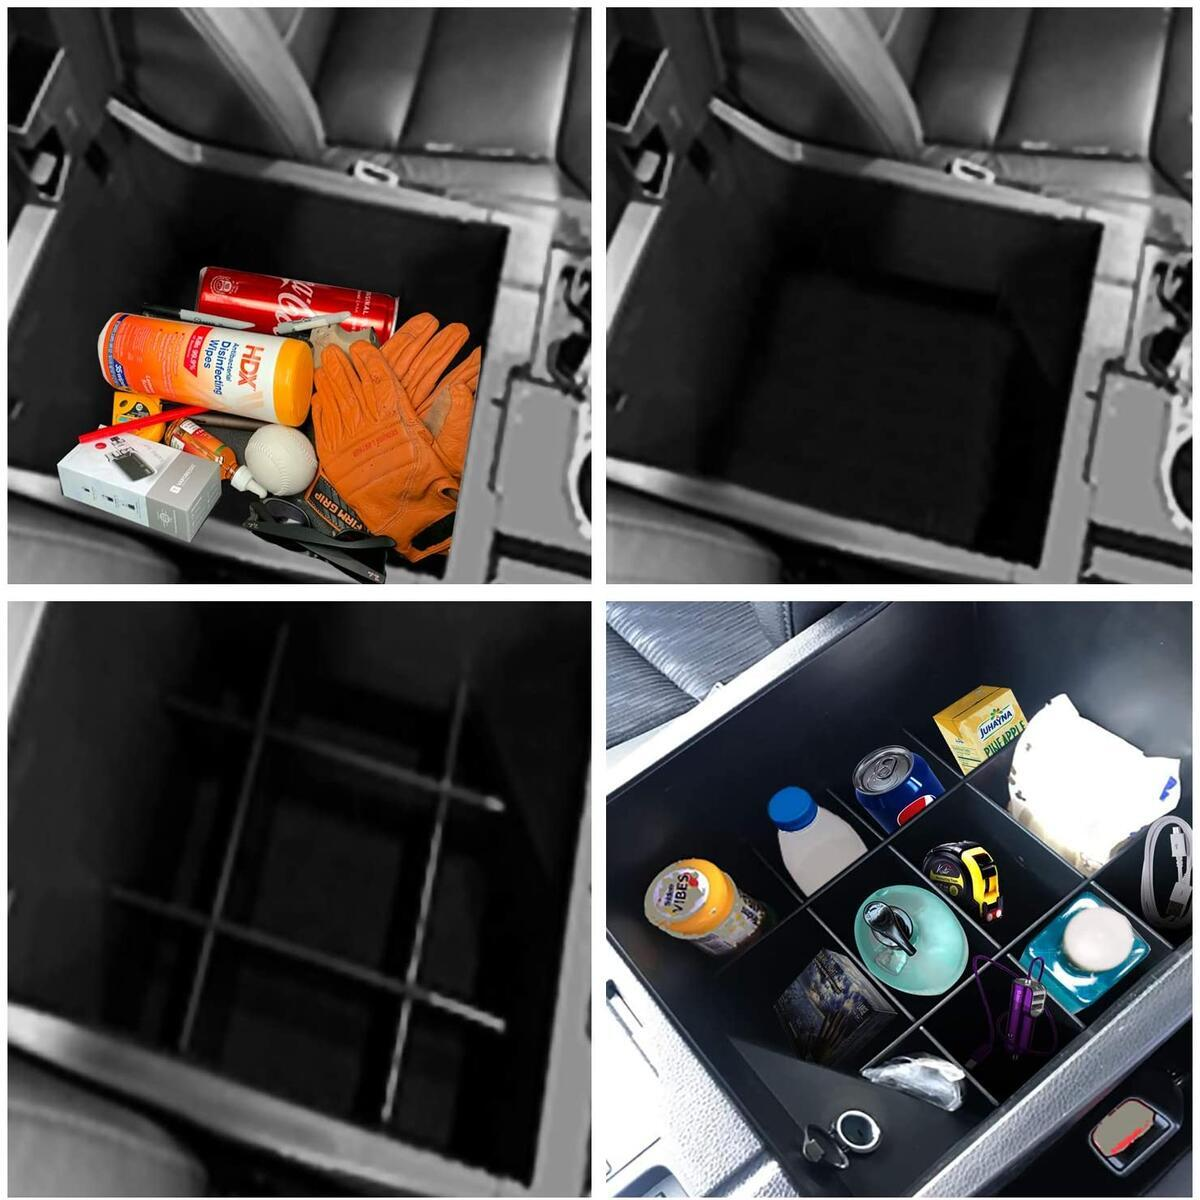 Center Console Organizer Divider Compatible with Toyota Tundra, Armrest Console Interlocking Insert Dividers, Car Accessories for Years 2014-2021 All Models, Black